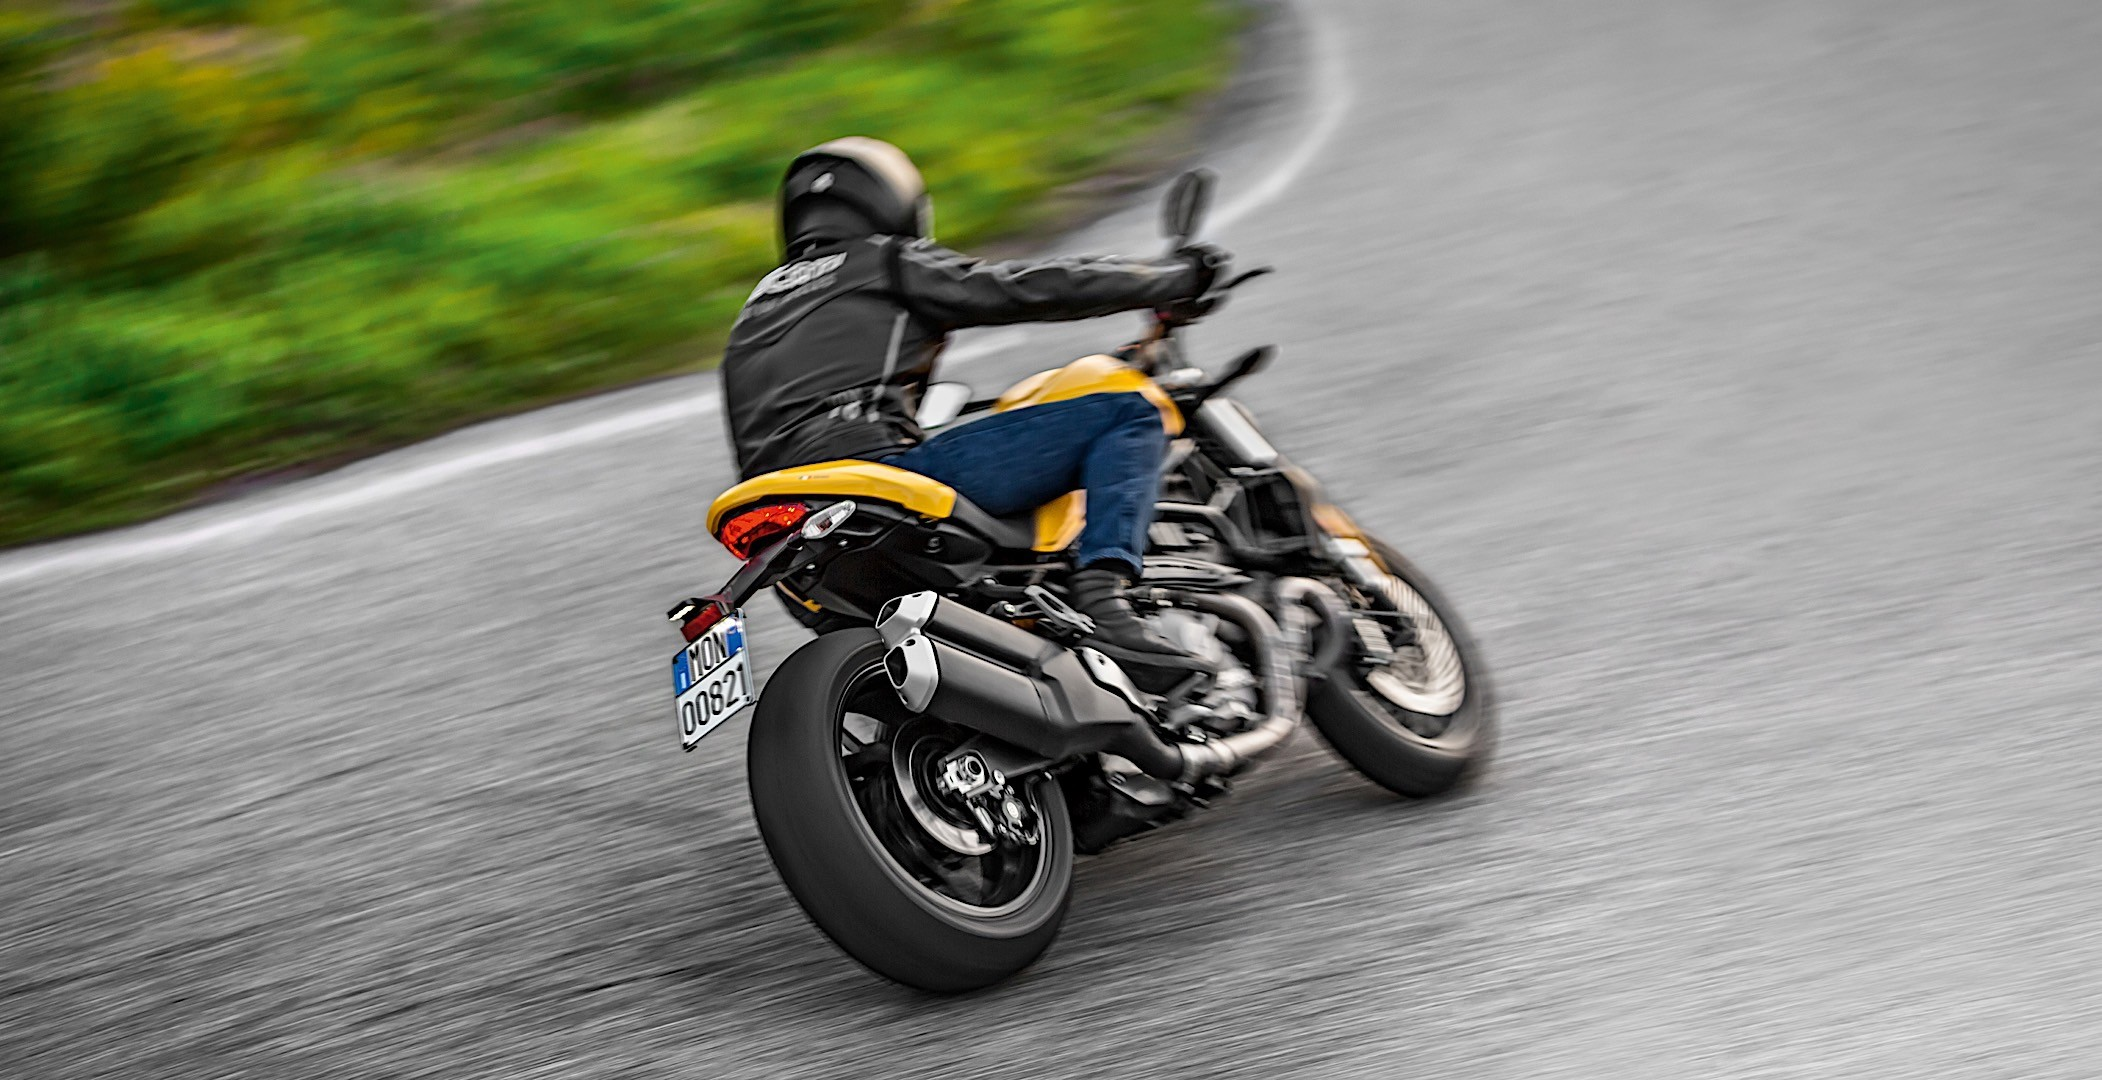 Ducati Monster 821 Goes Old-School For 2018 - autoevolution